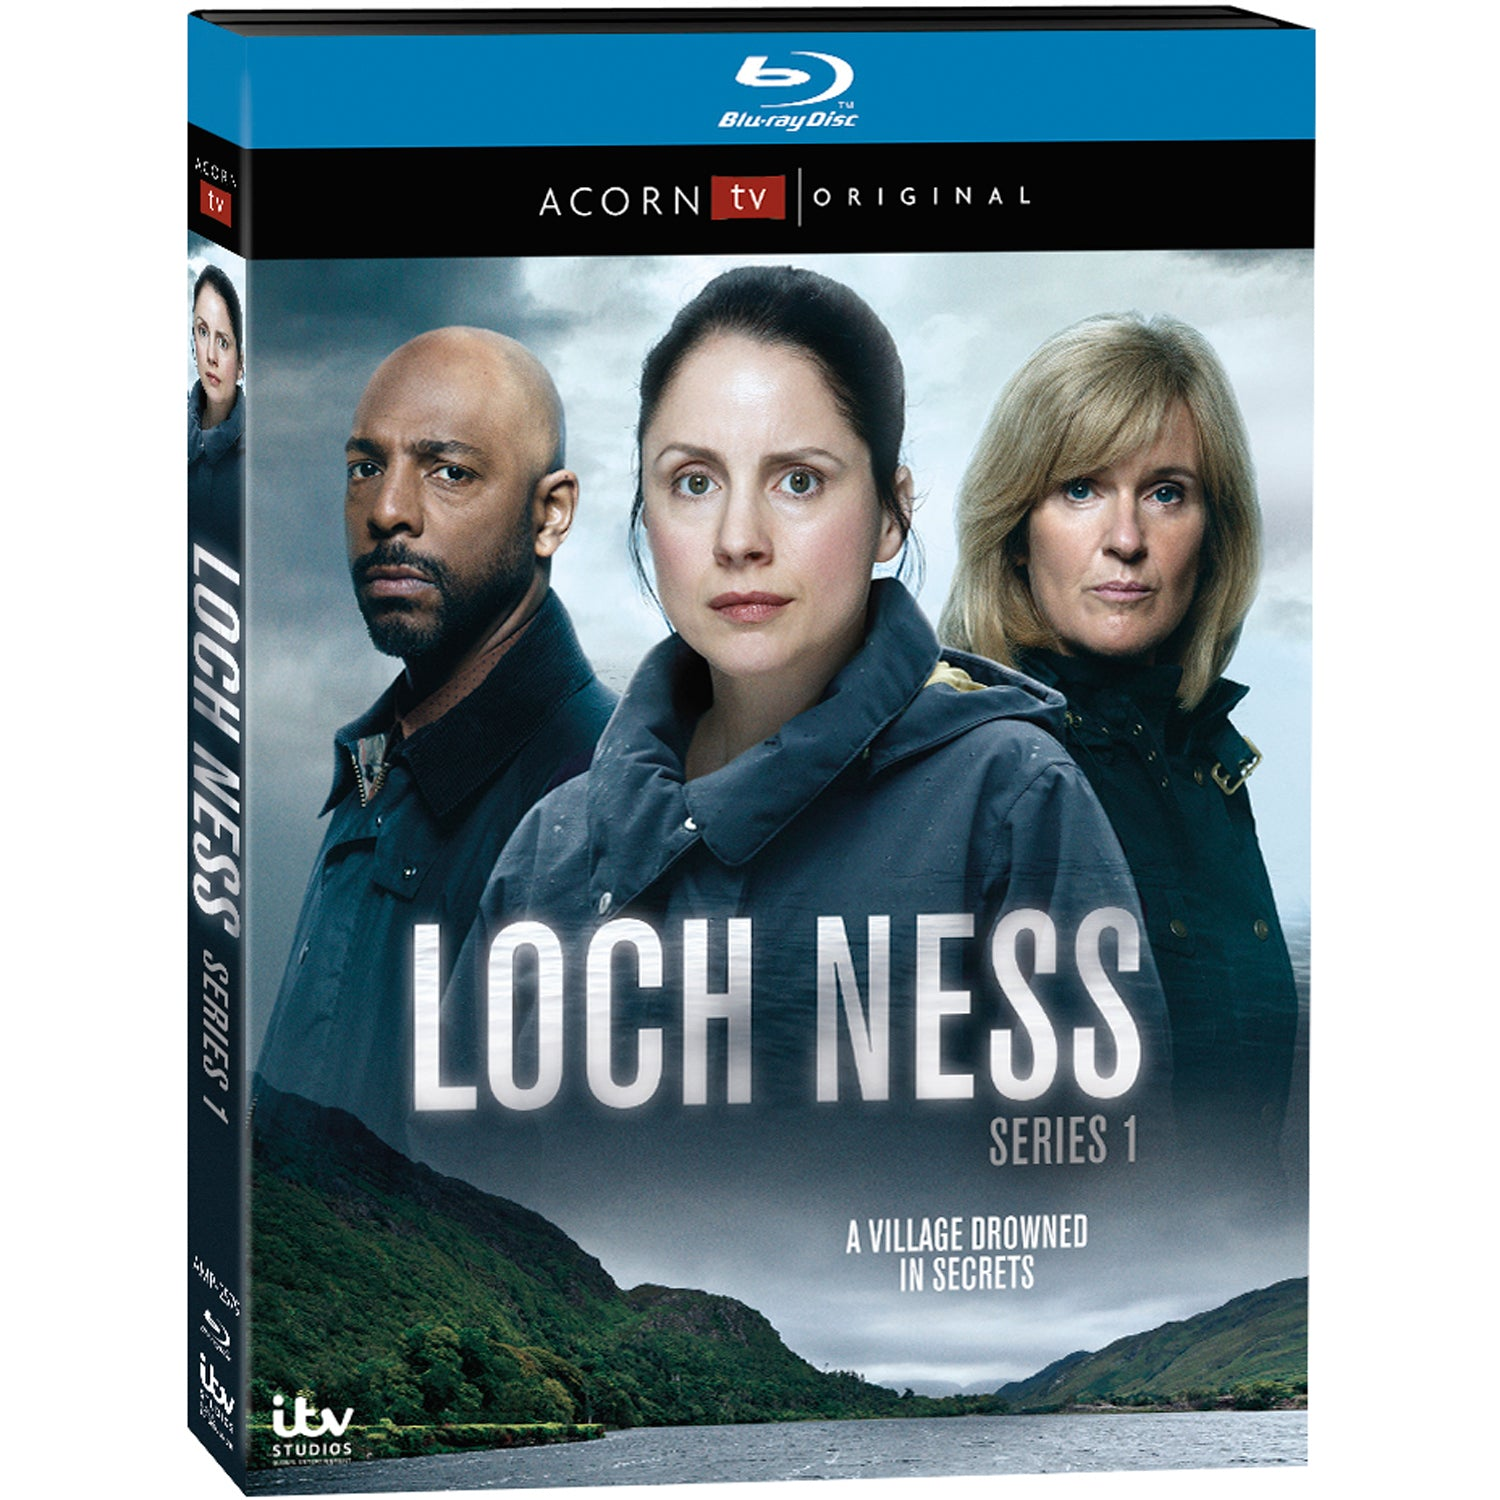 Loch Ness: Series 1 (Blu-ray)